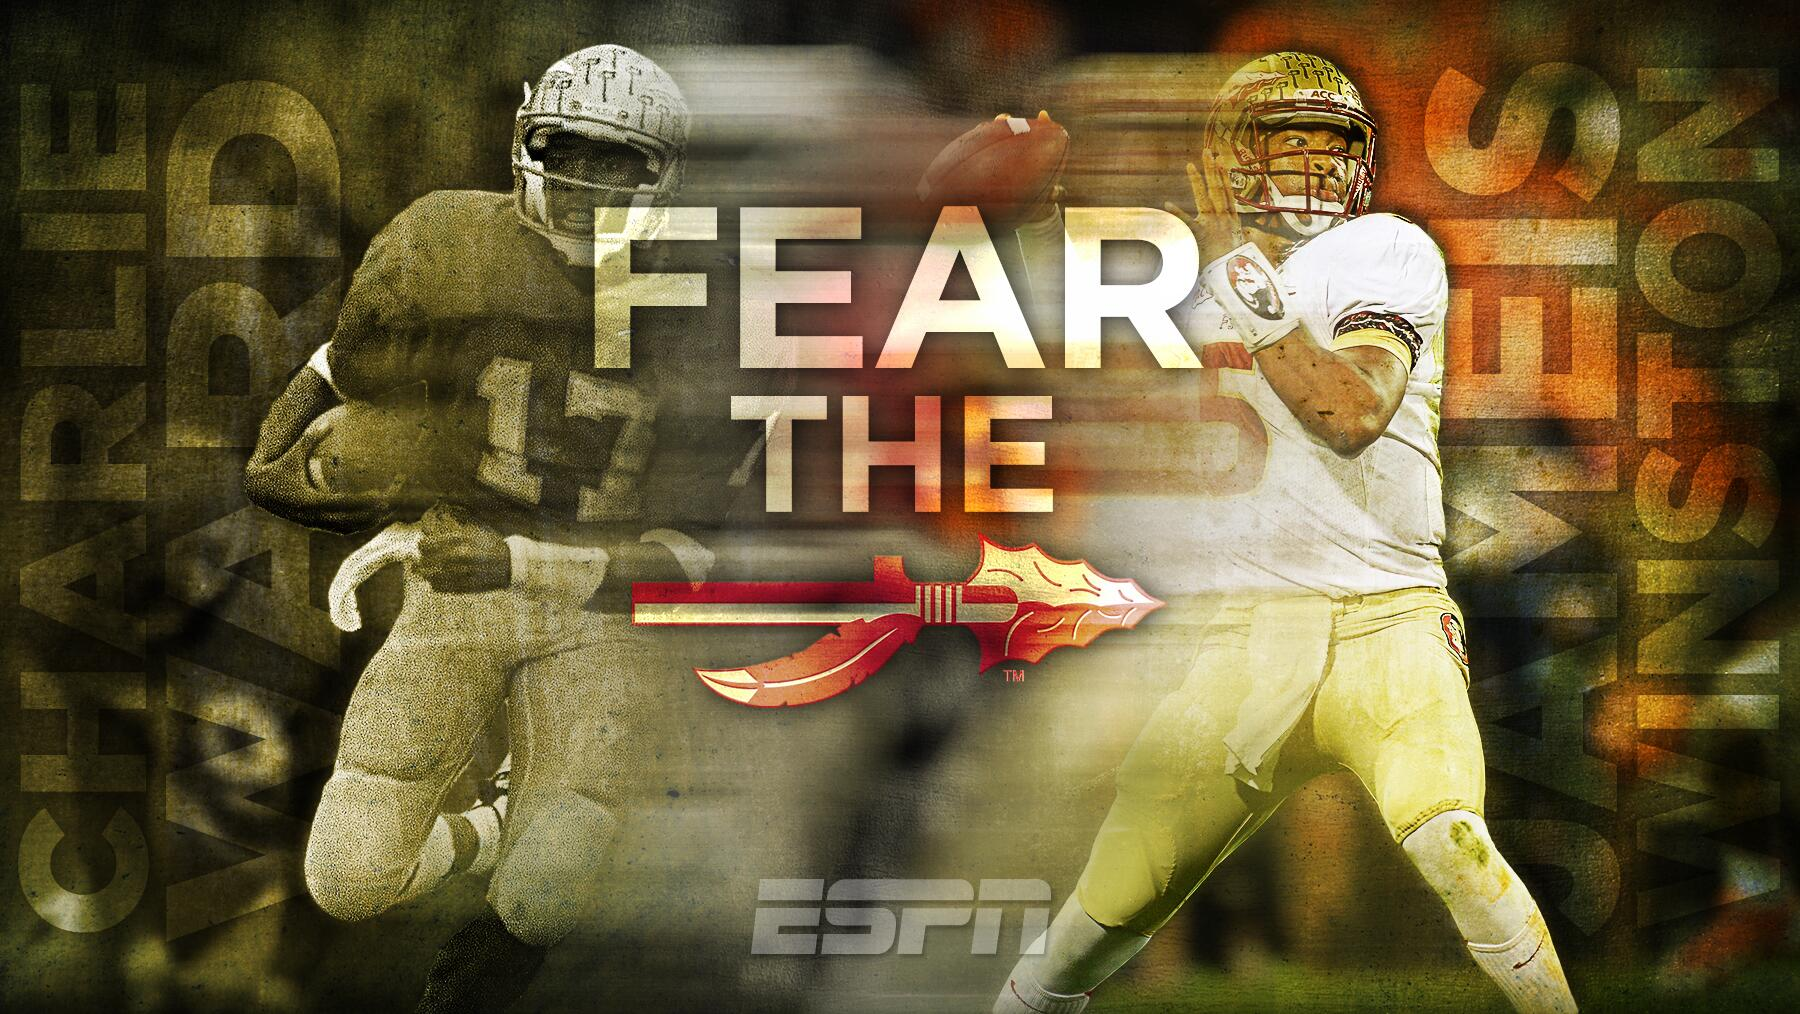 RT @ESPNCFB: And #Noles fans, Retweet if you think #3 Florida State will defeat #7 Miami http://t.co/VSElP84S61